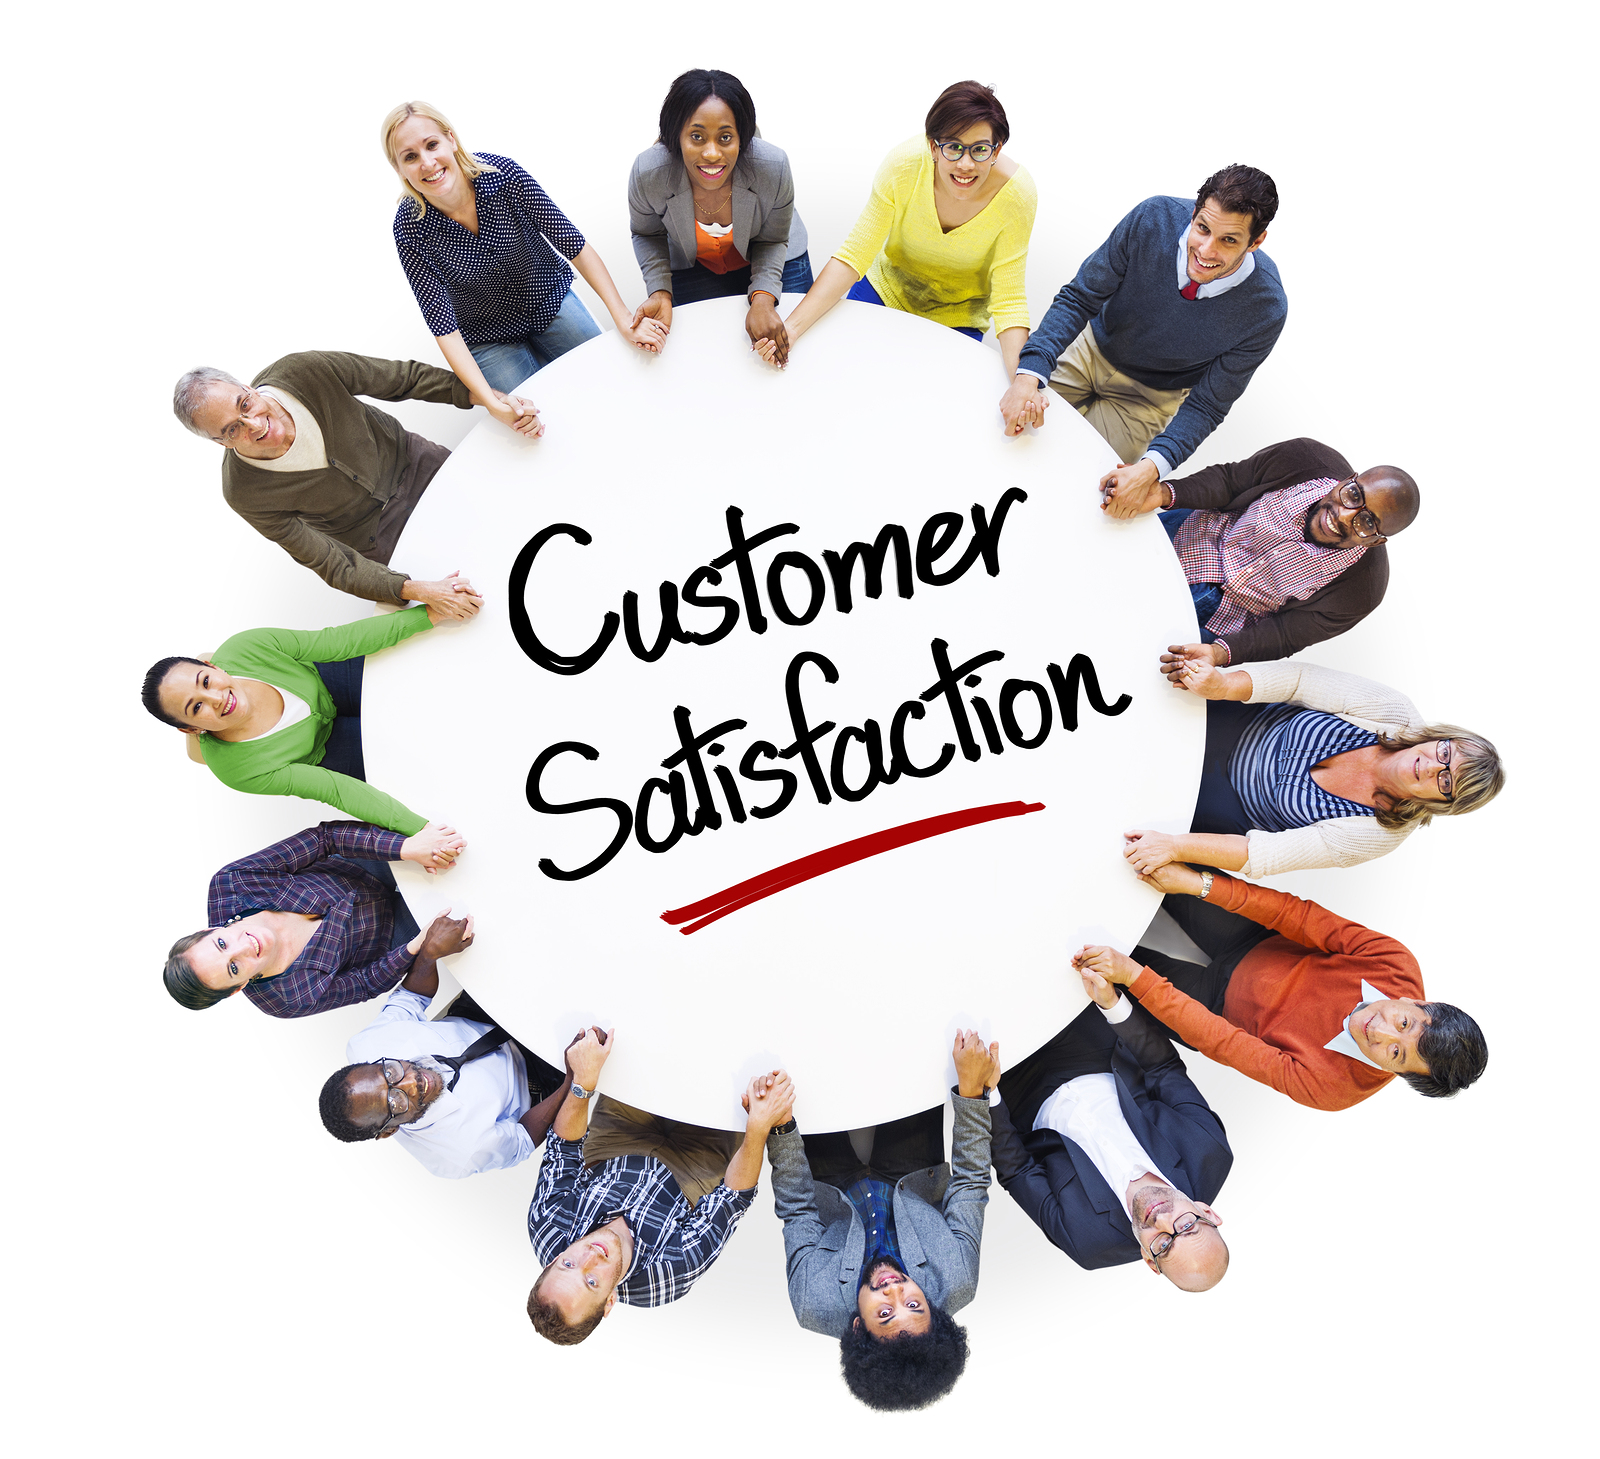 4 Strategic Ways to Ensure Customer Satisfaction Online